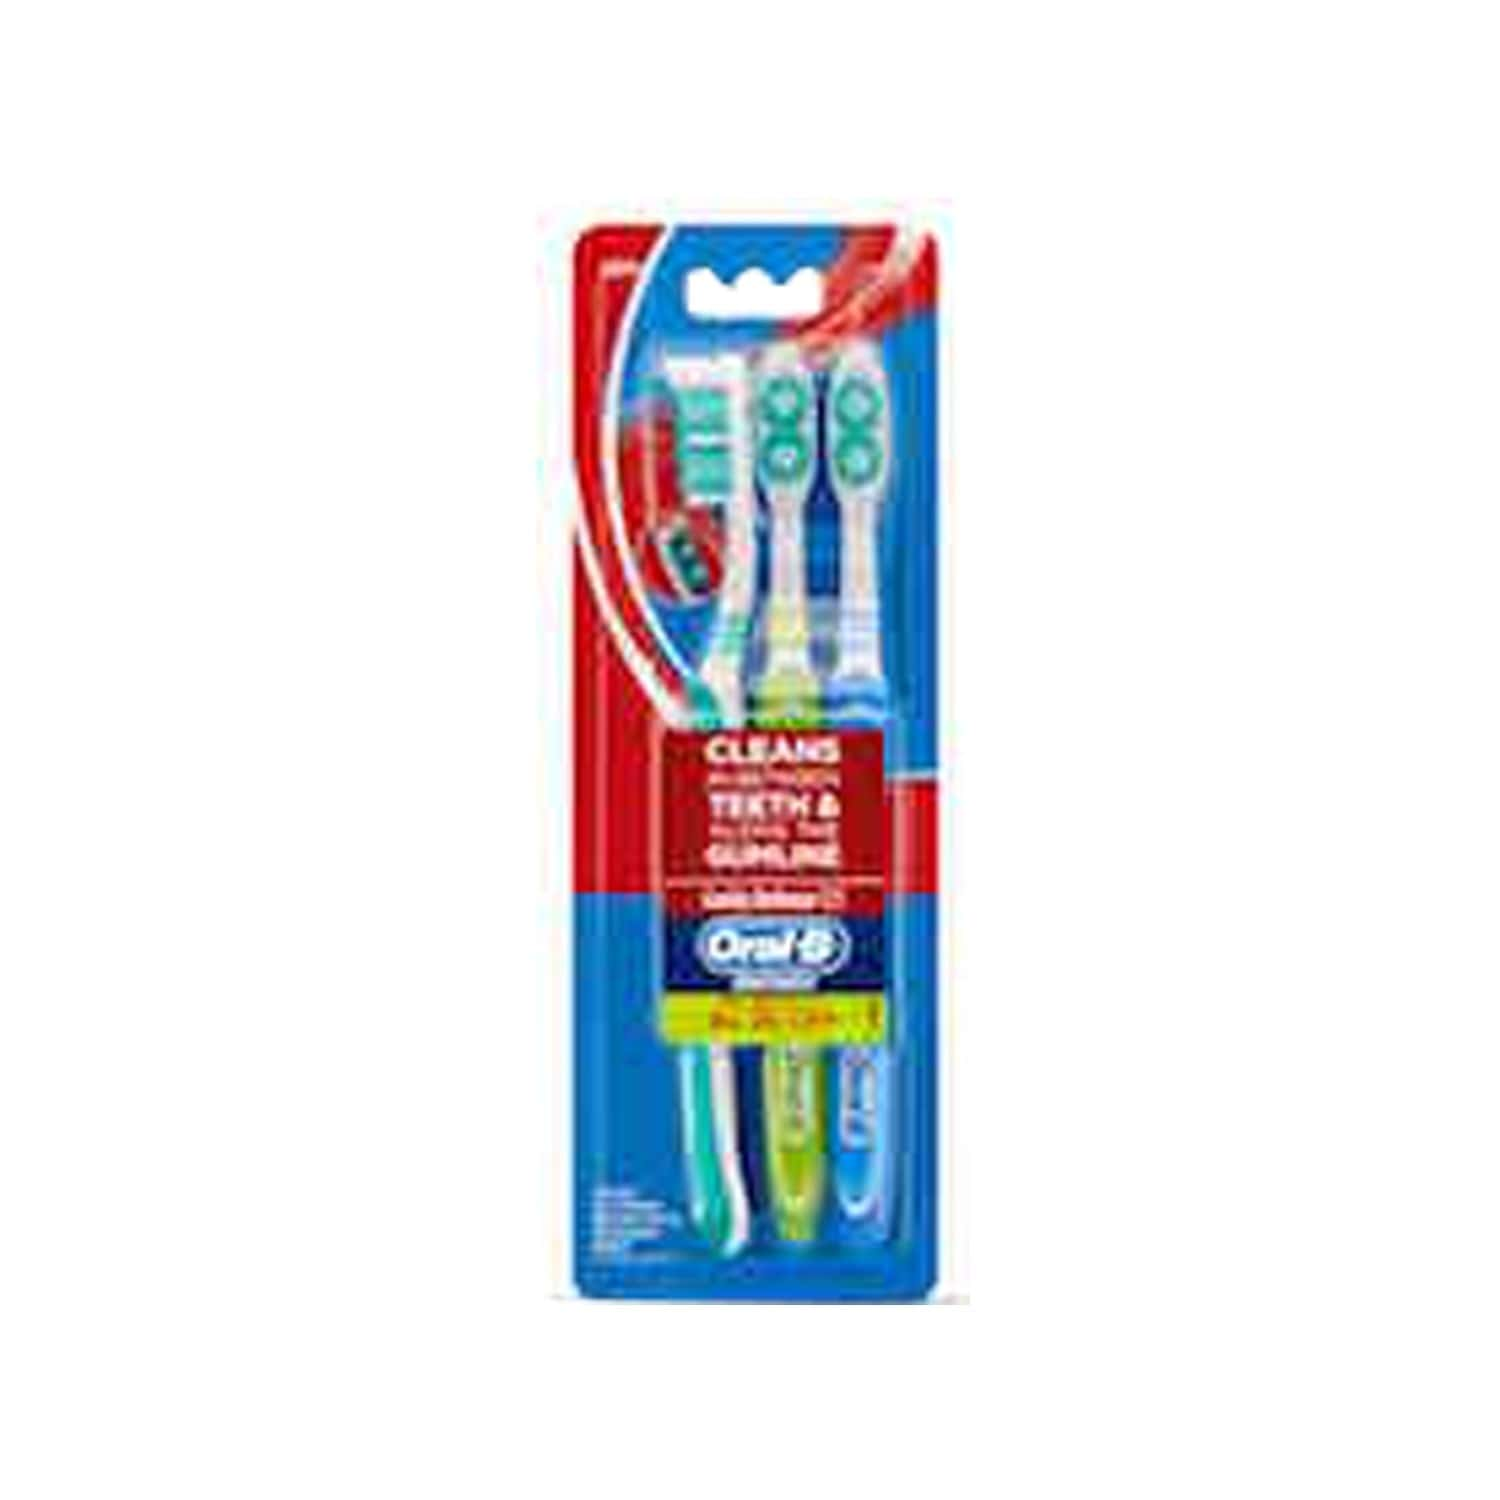 Oral-b All Rounder Cavity Defence 123 Toothbrush Soft 3 Piece